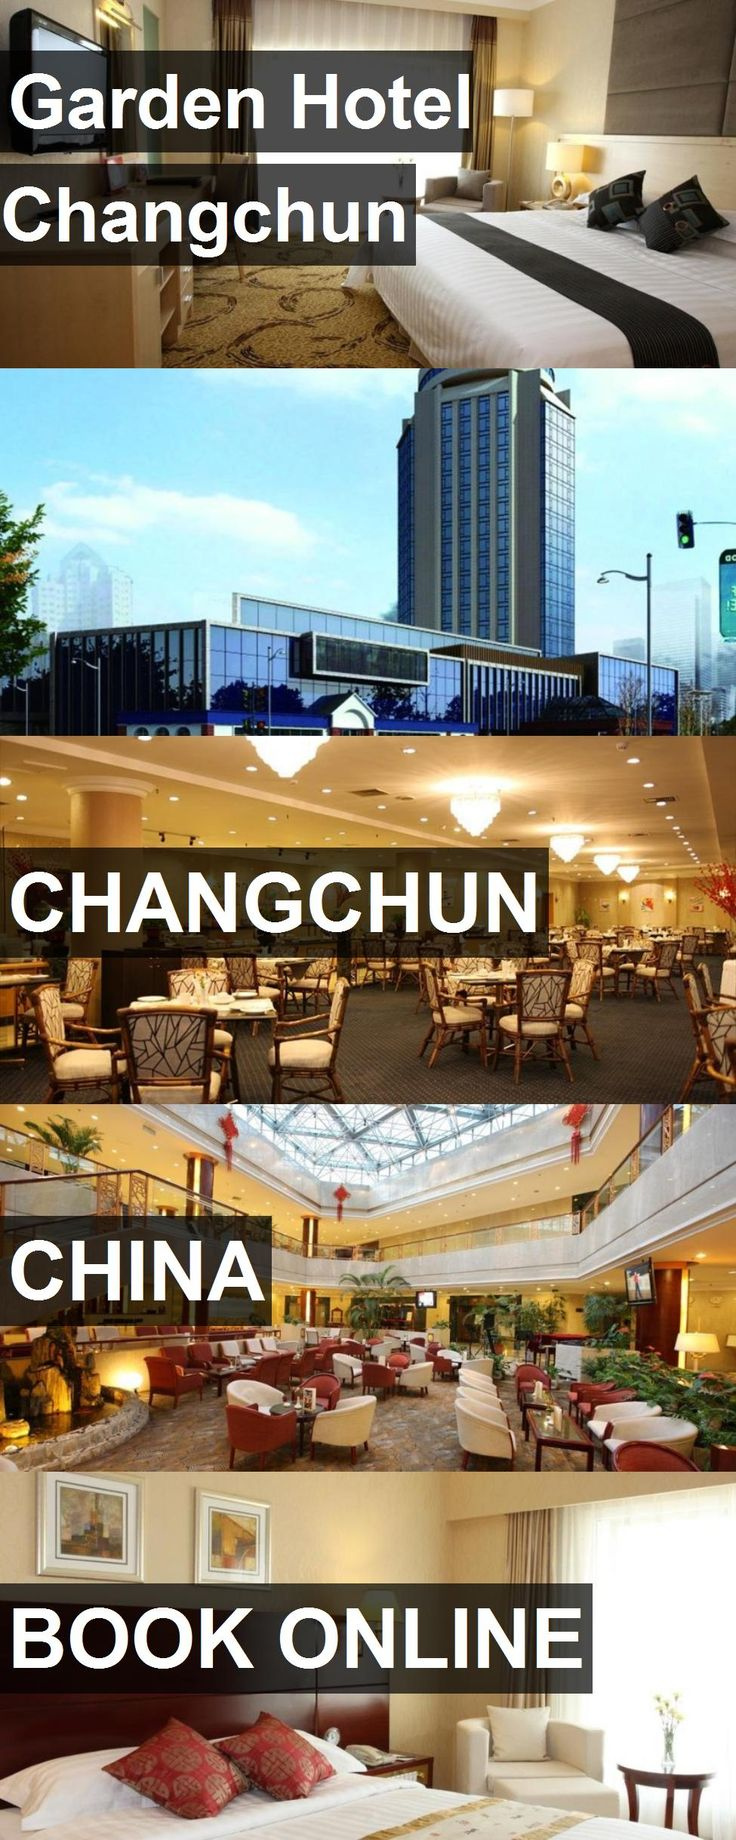 Garden Hotel Changchun in Changchun, China. For more information, photos, reviews and best prices please follow the link. #China #Changchun #travel #vacation #hotel